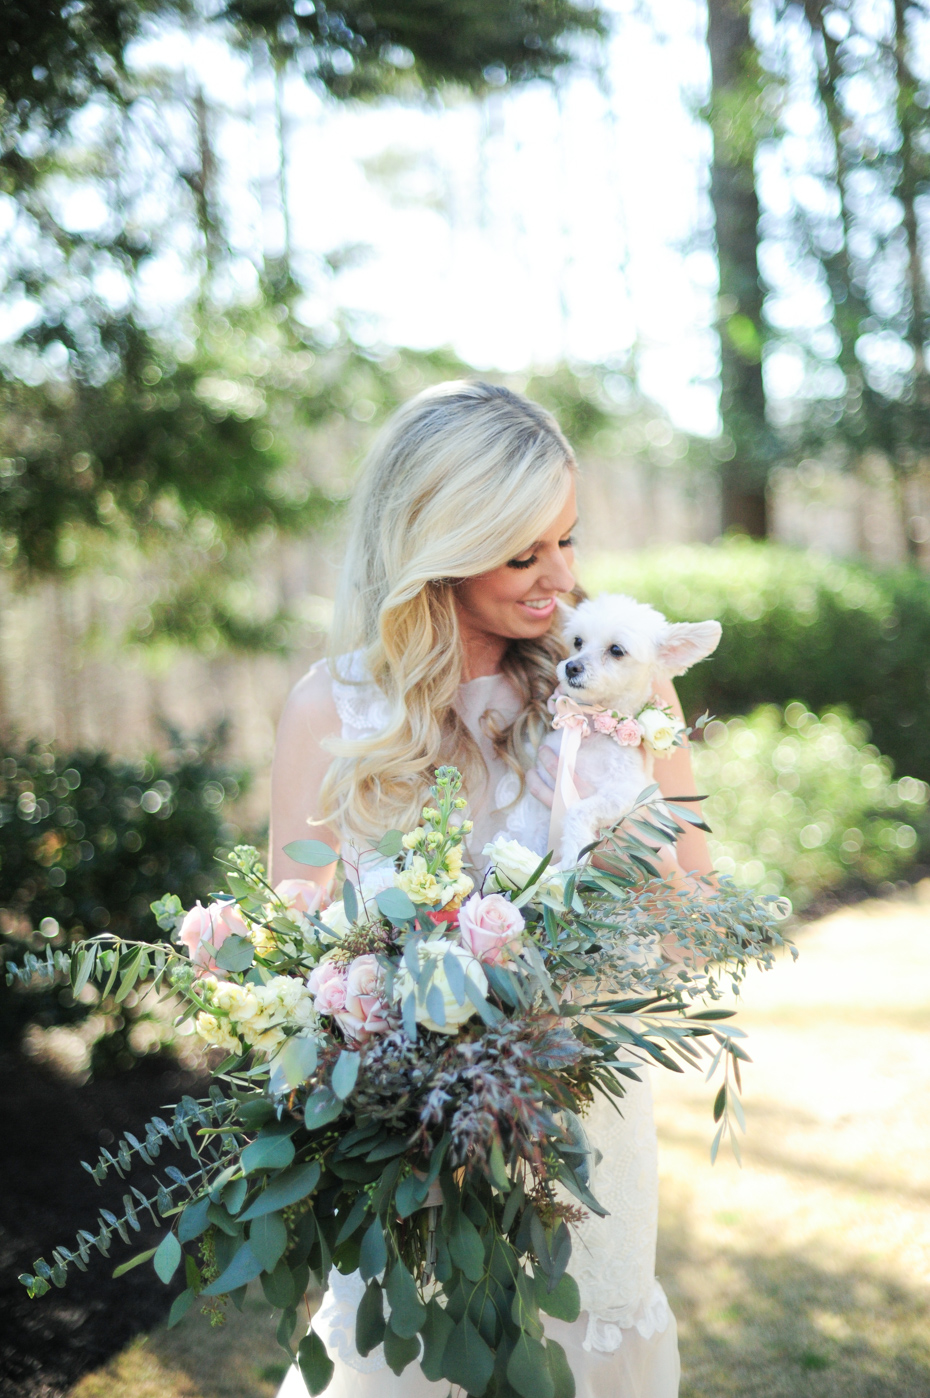 Bride and her dog at wedding